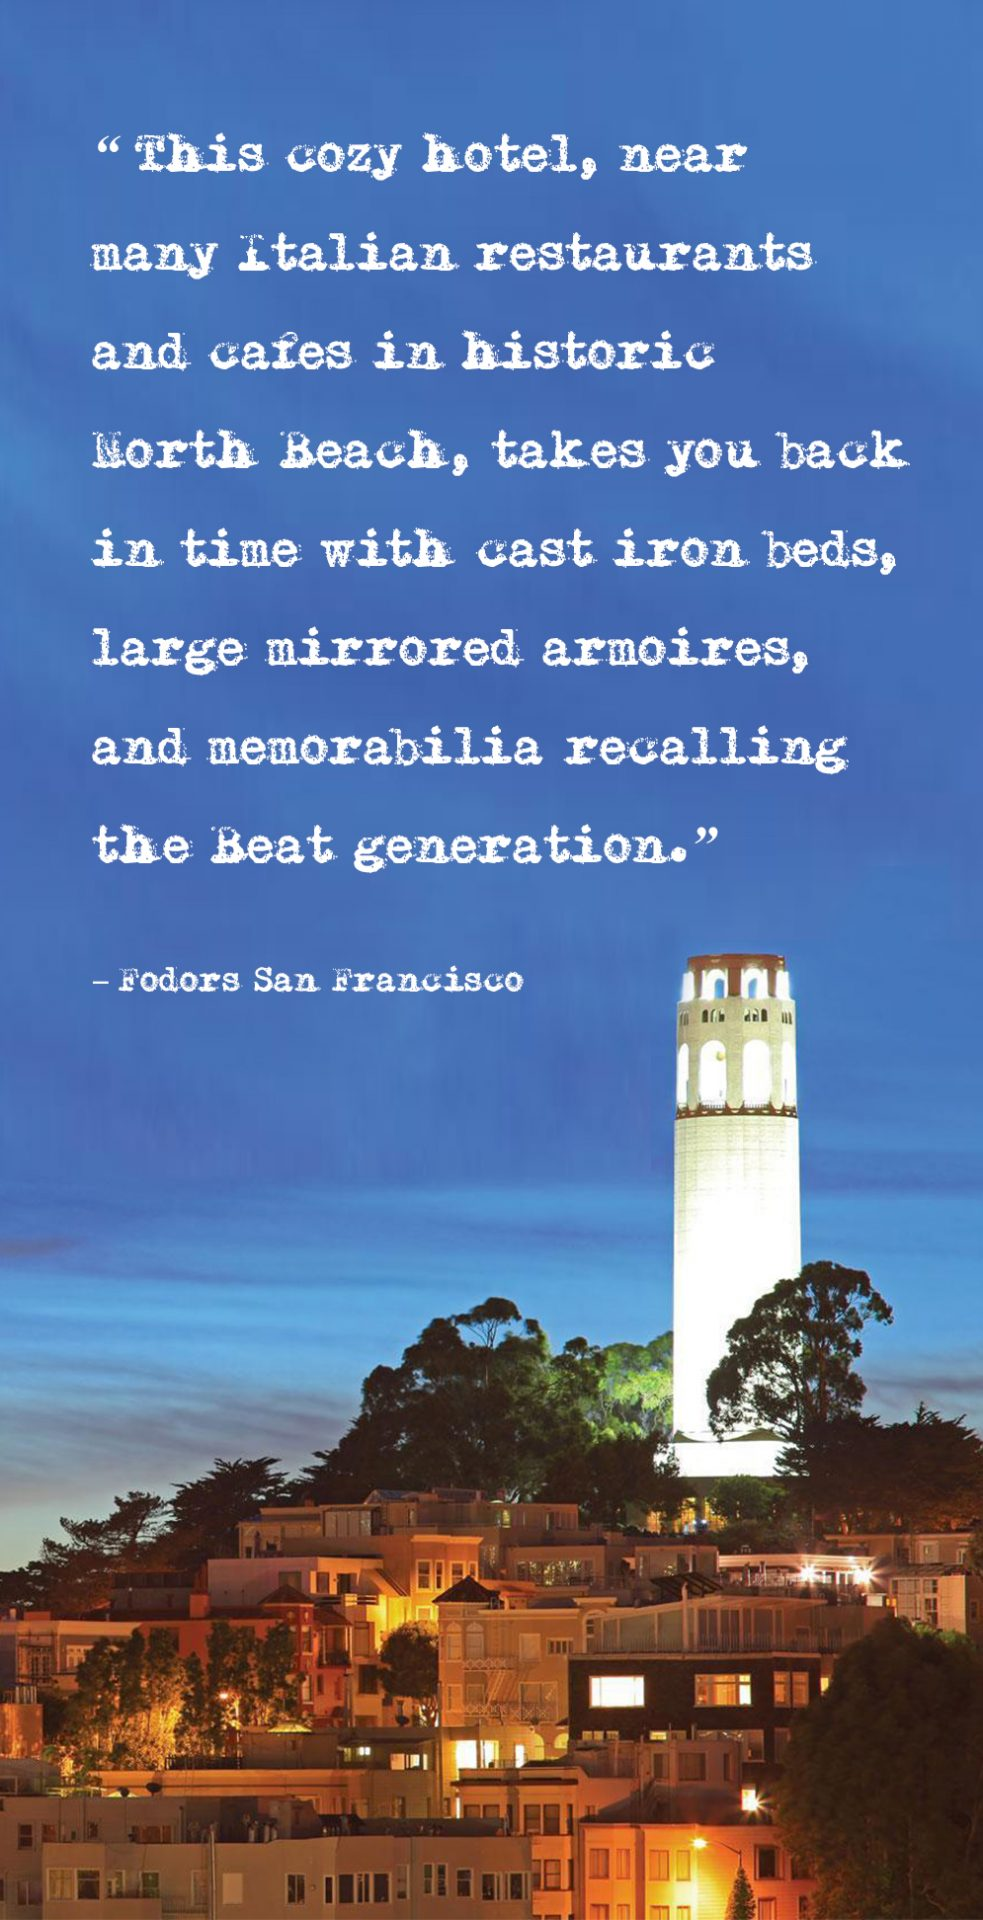 Coit Tower / FODORS, San Francisco